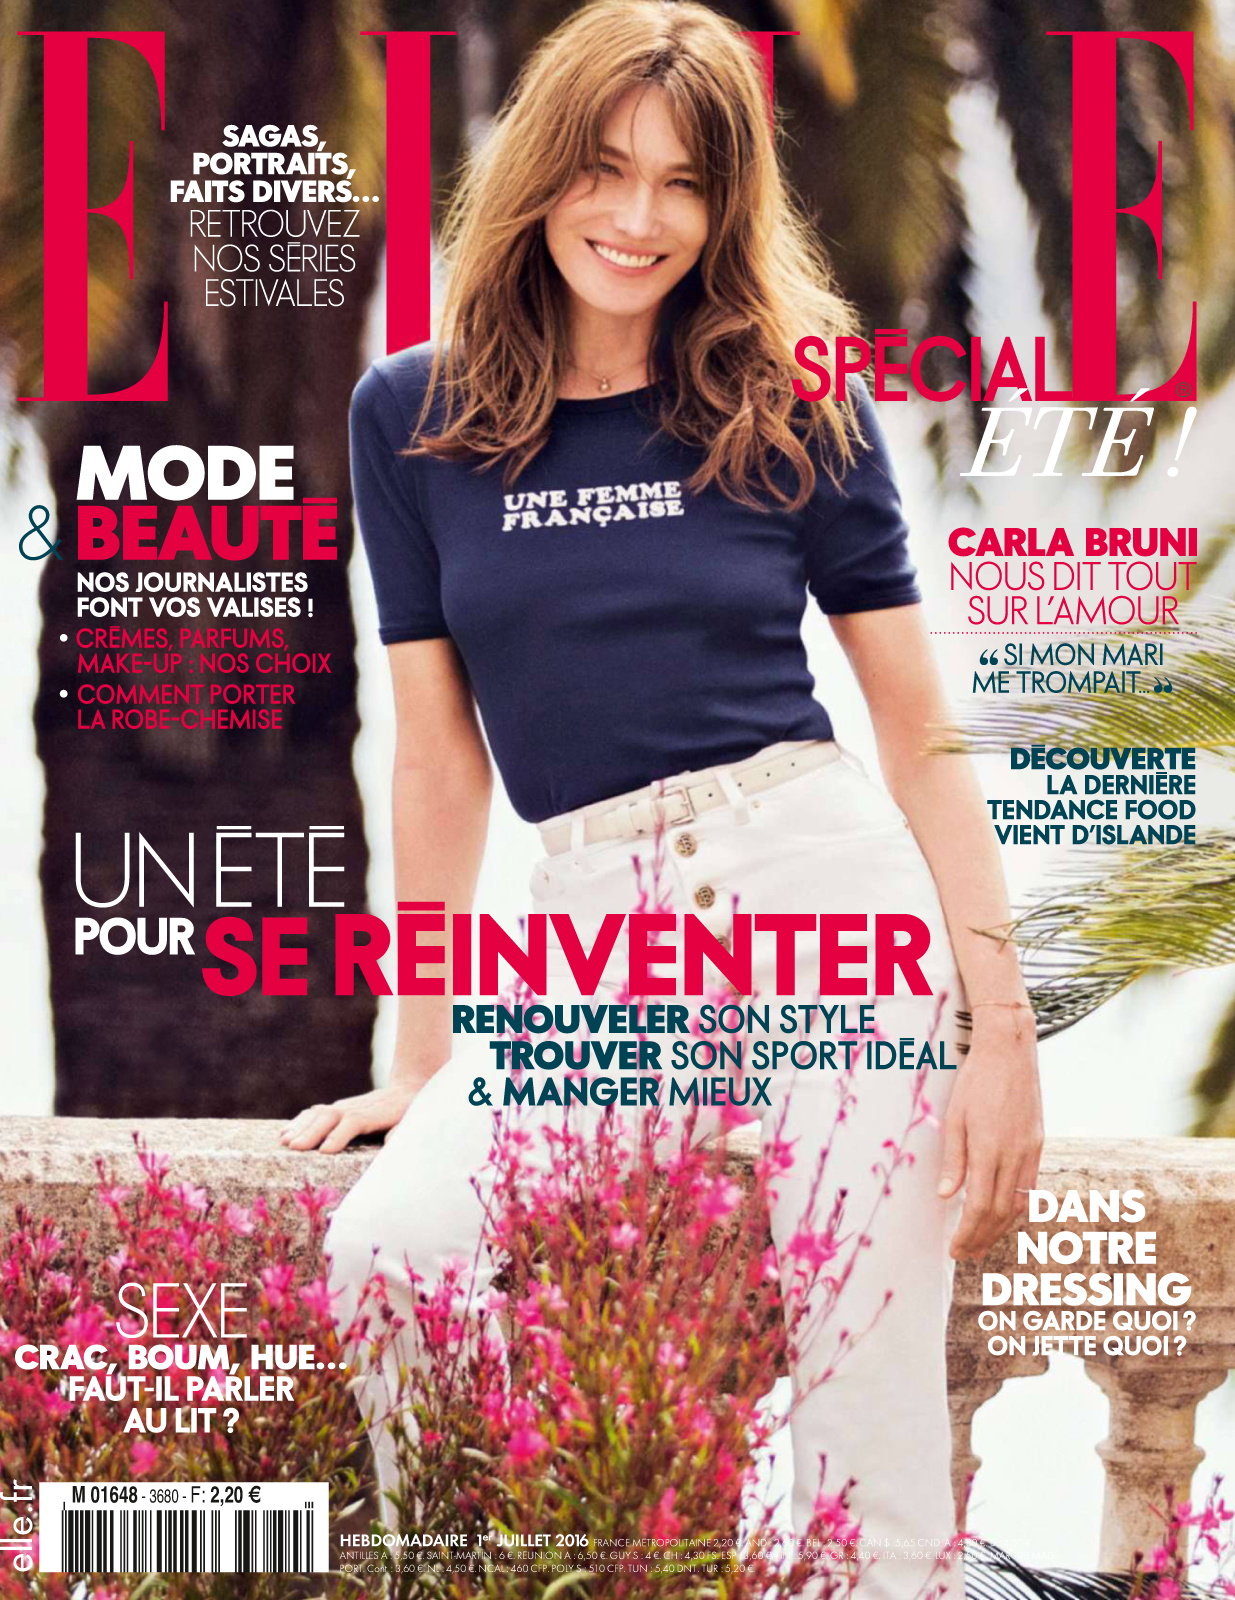 Elle France July 2016 Cover Chateau Eza.jpg